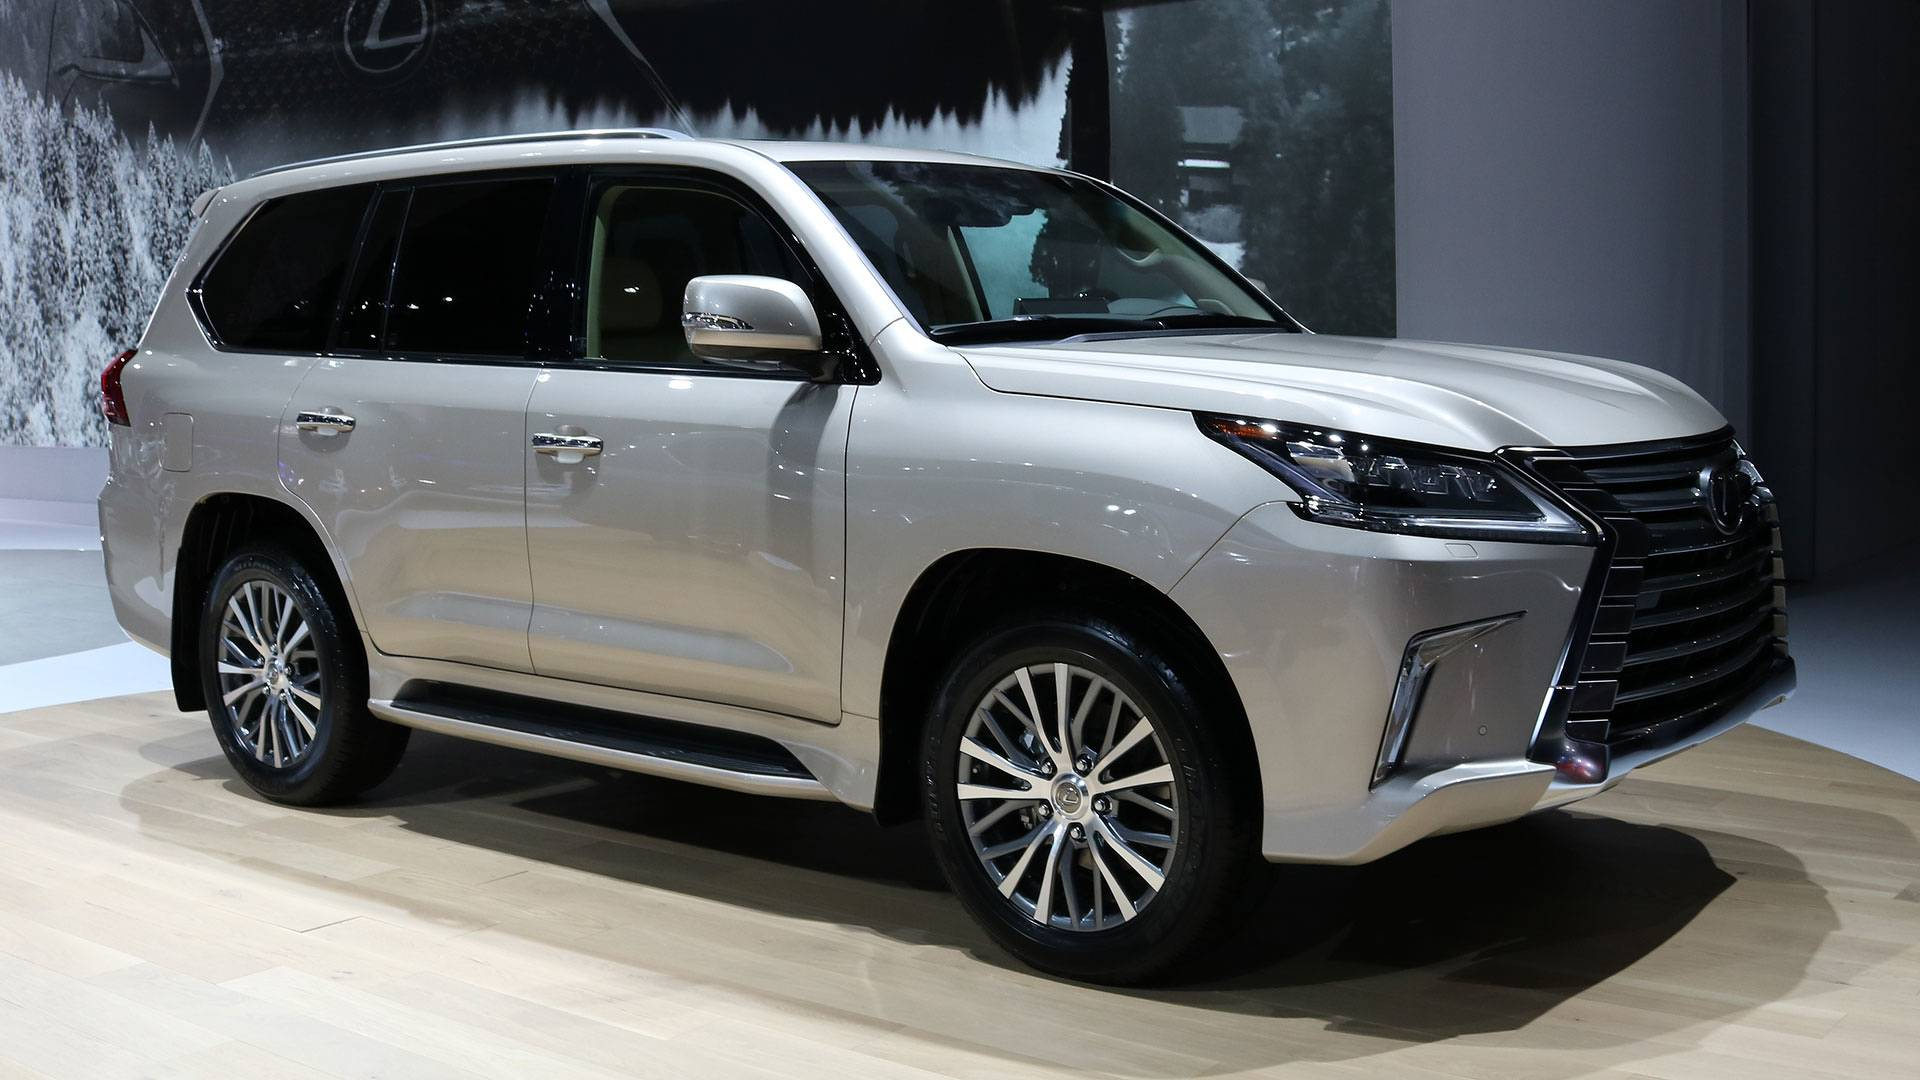 Two Row Lexus Lx 570 Carries Fewer Passengers To Fit More Stuff